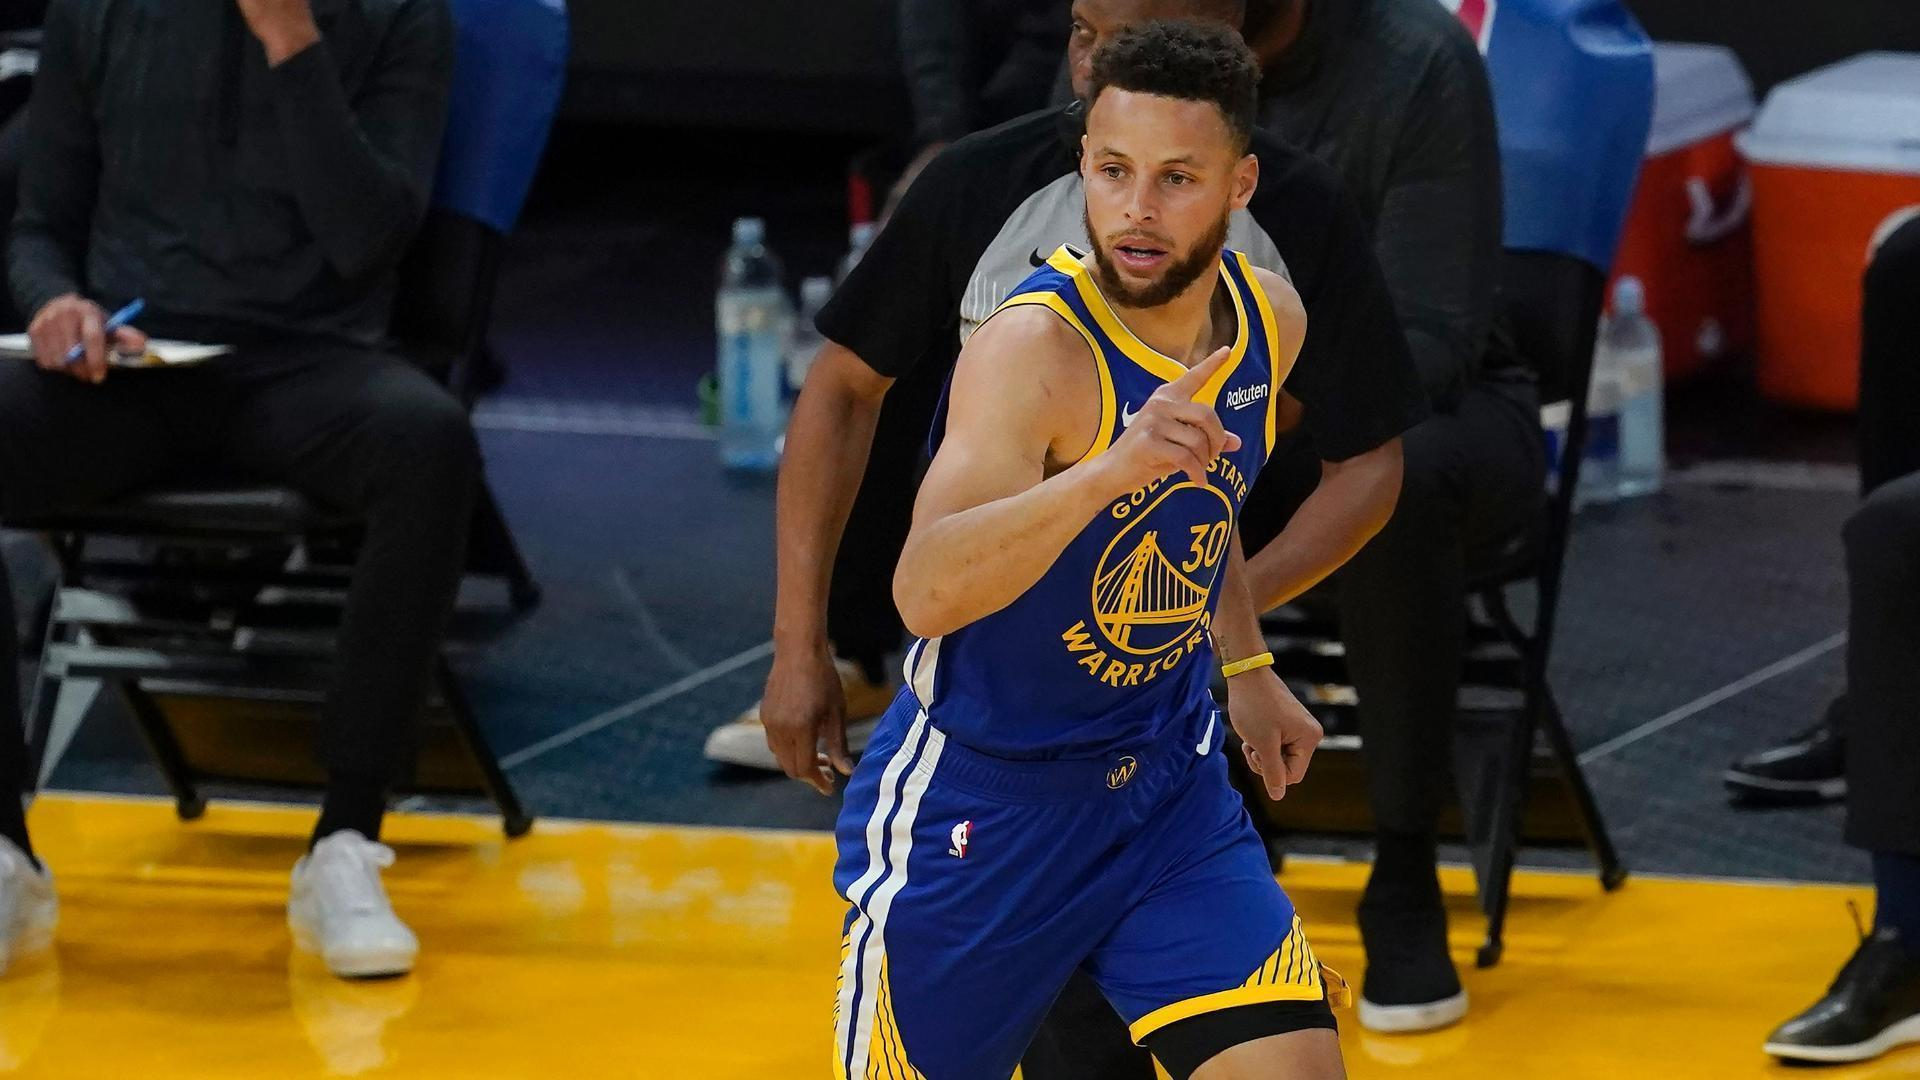 Steph's layup makes him Warriors' all-time leading scorer